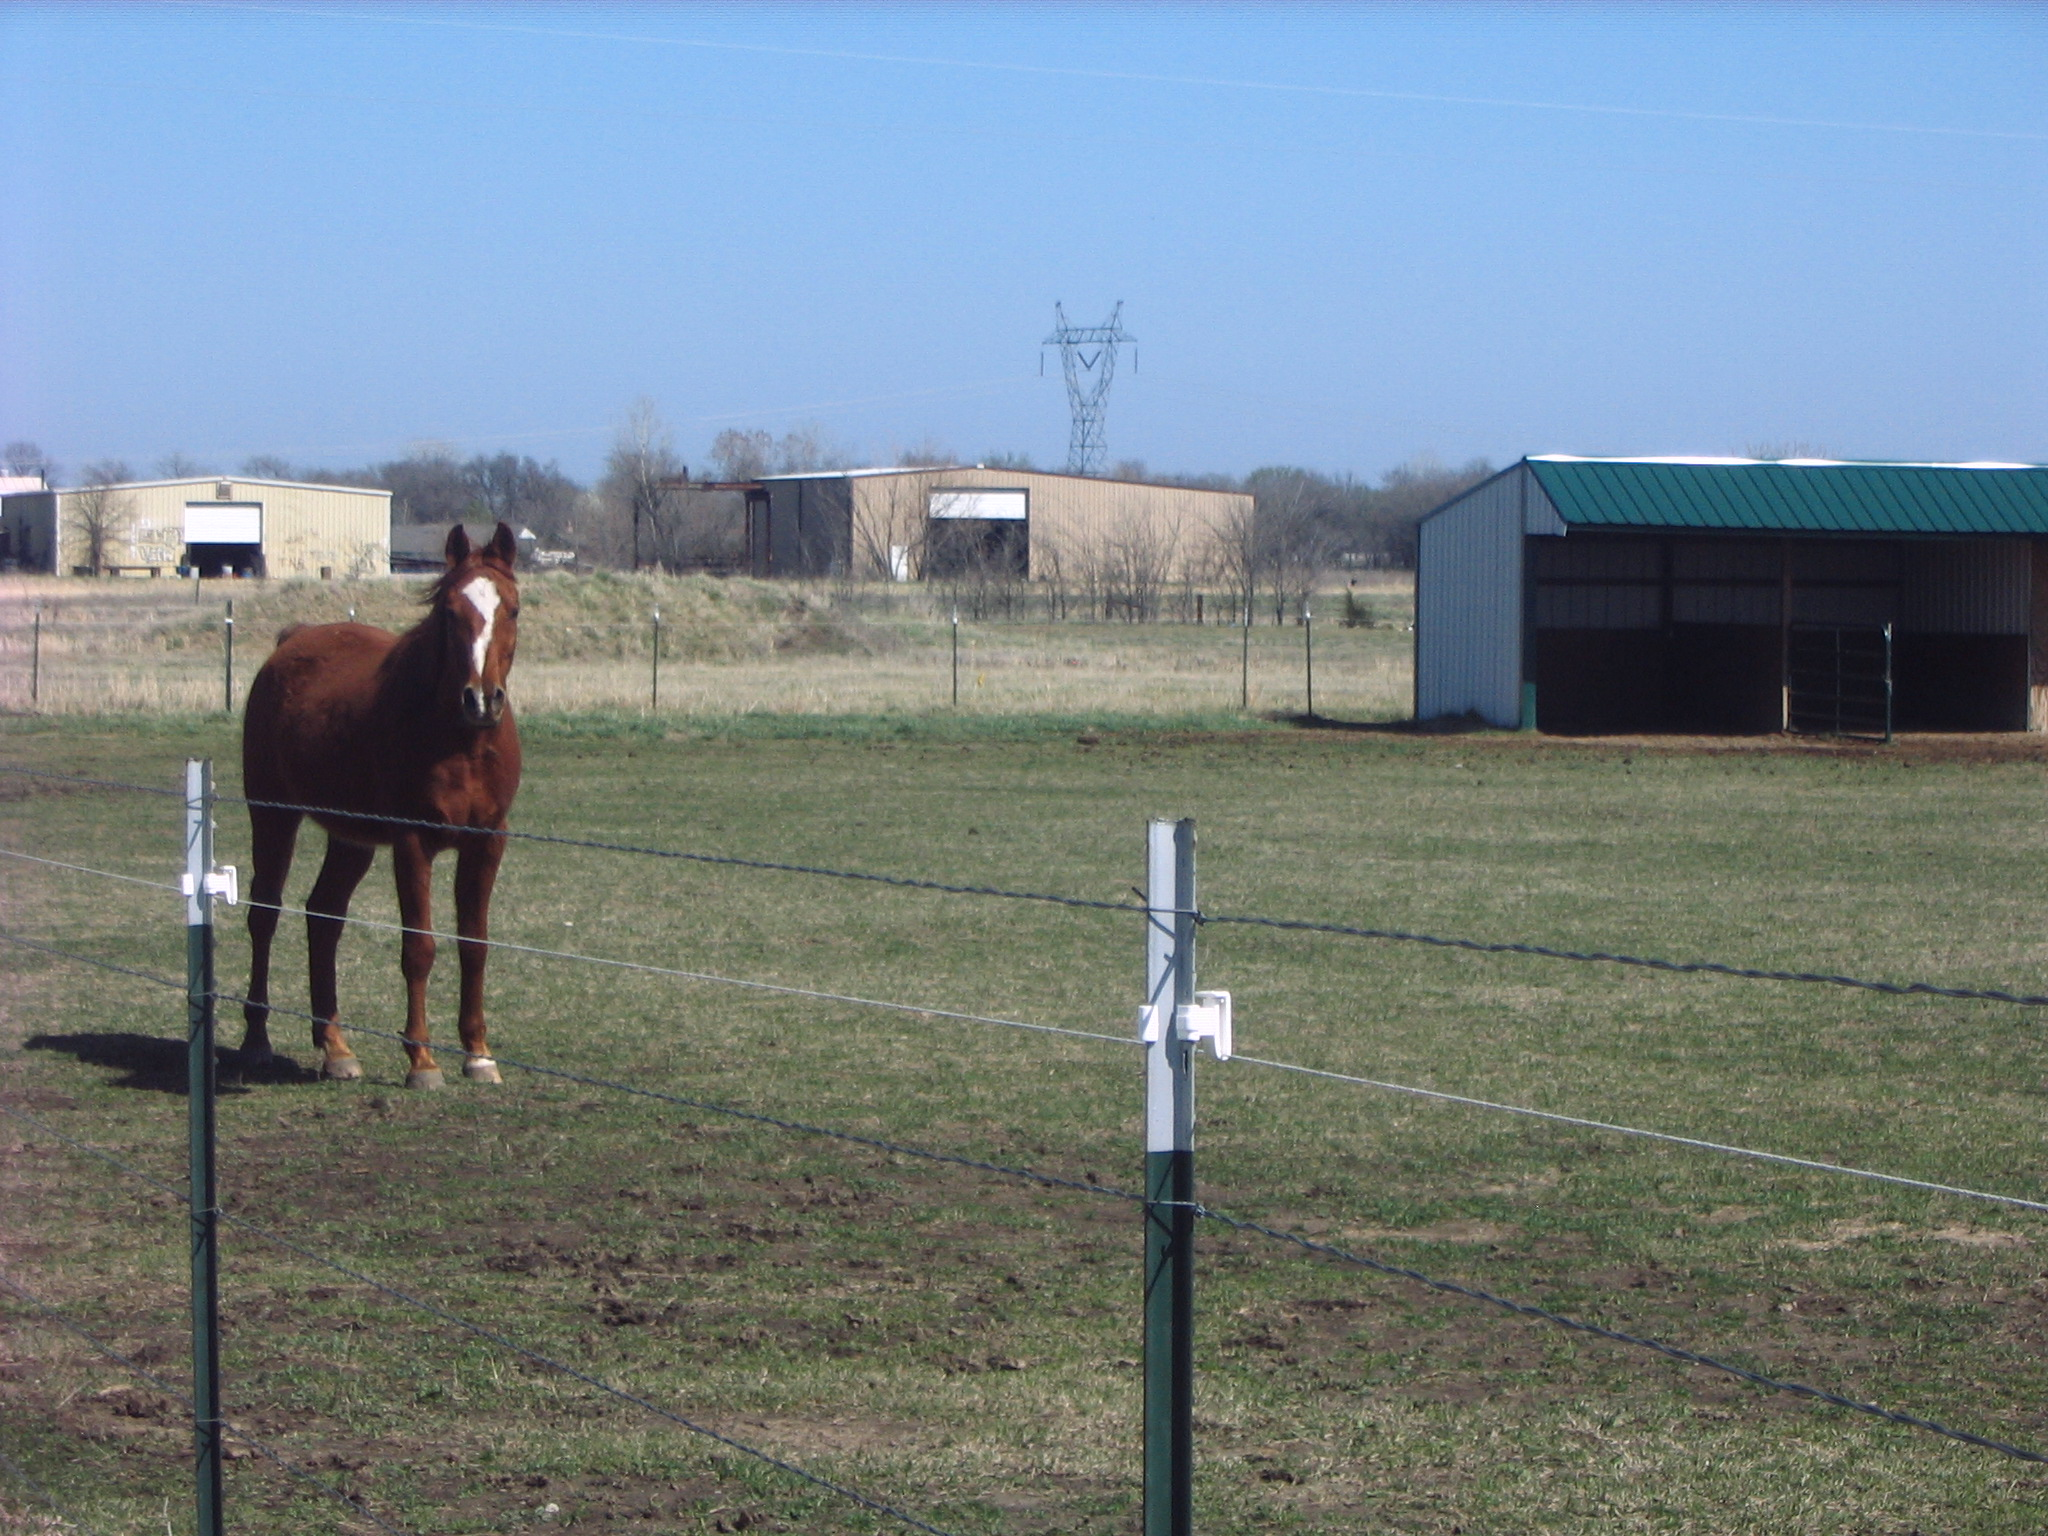 Smooth Wire Fencing With Hot Wire For Horses Horse Ideology